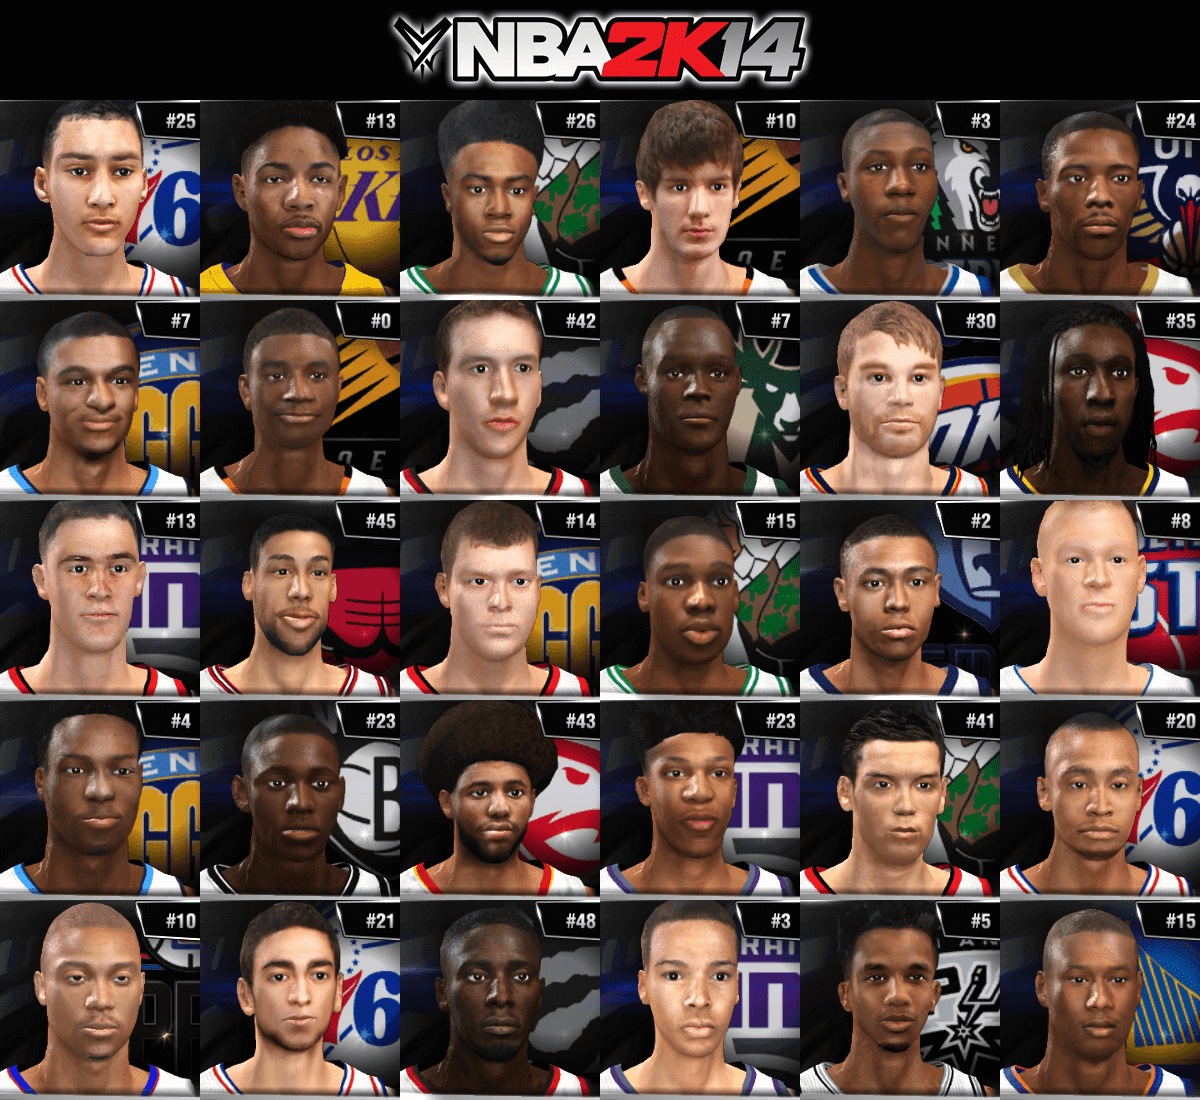 NBA 2k14 Ultimate Roster Update v7.1 : July 1st, 2016 - Rookies 2016